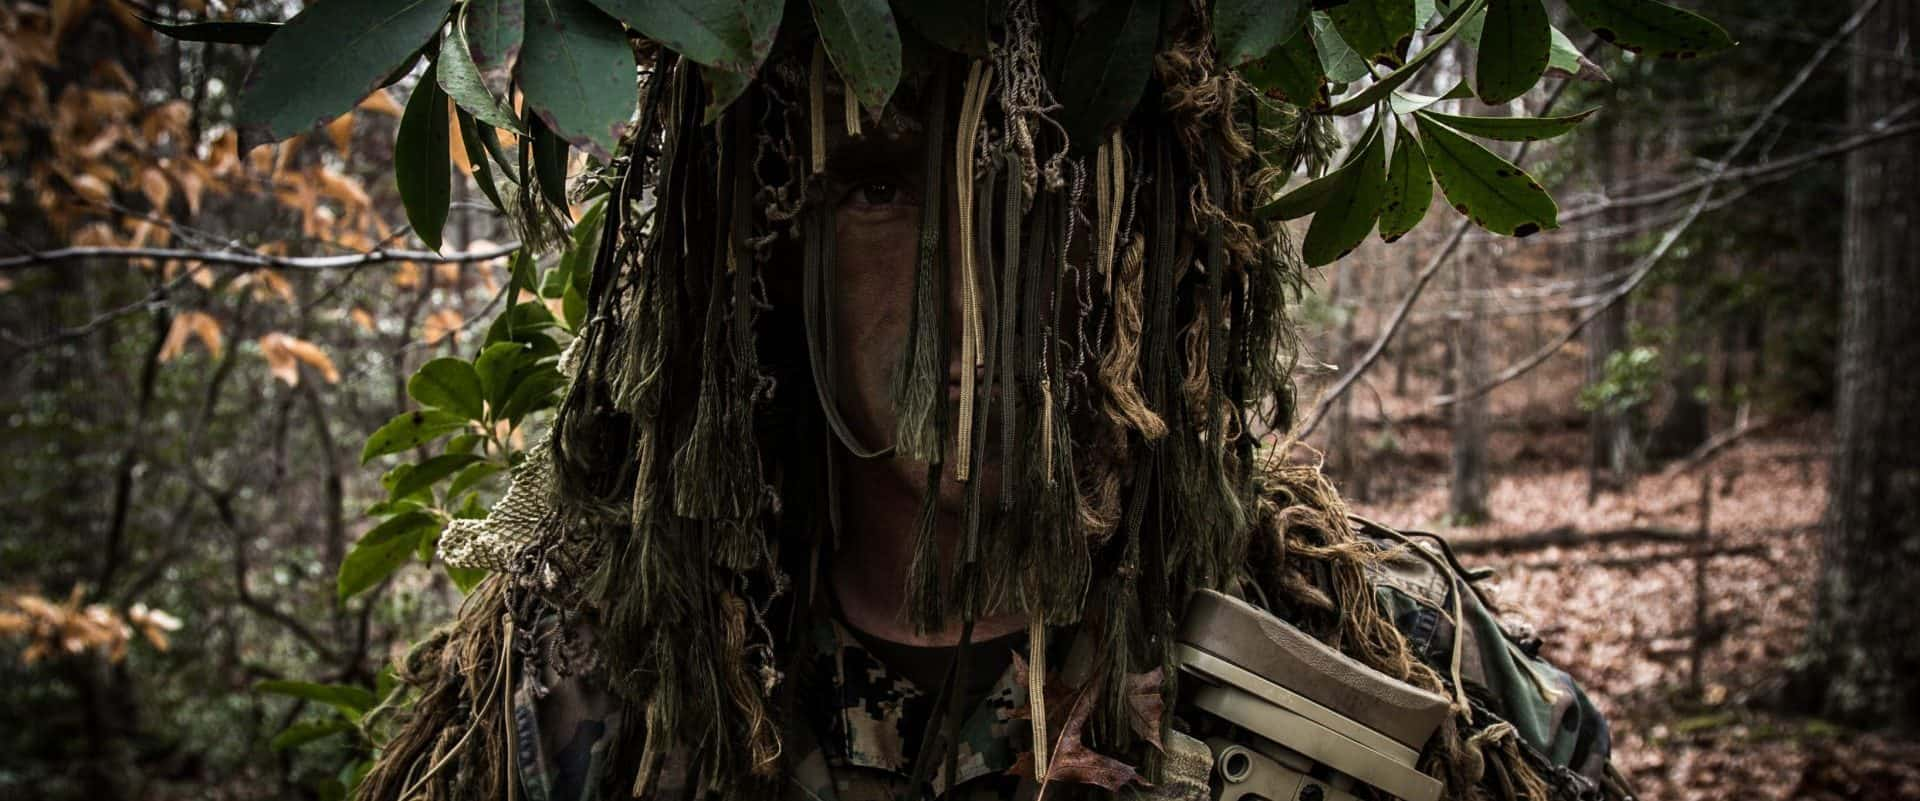 Extras, Sniper in full camo, looking like a tree, Scout Sniper School